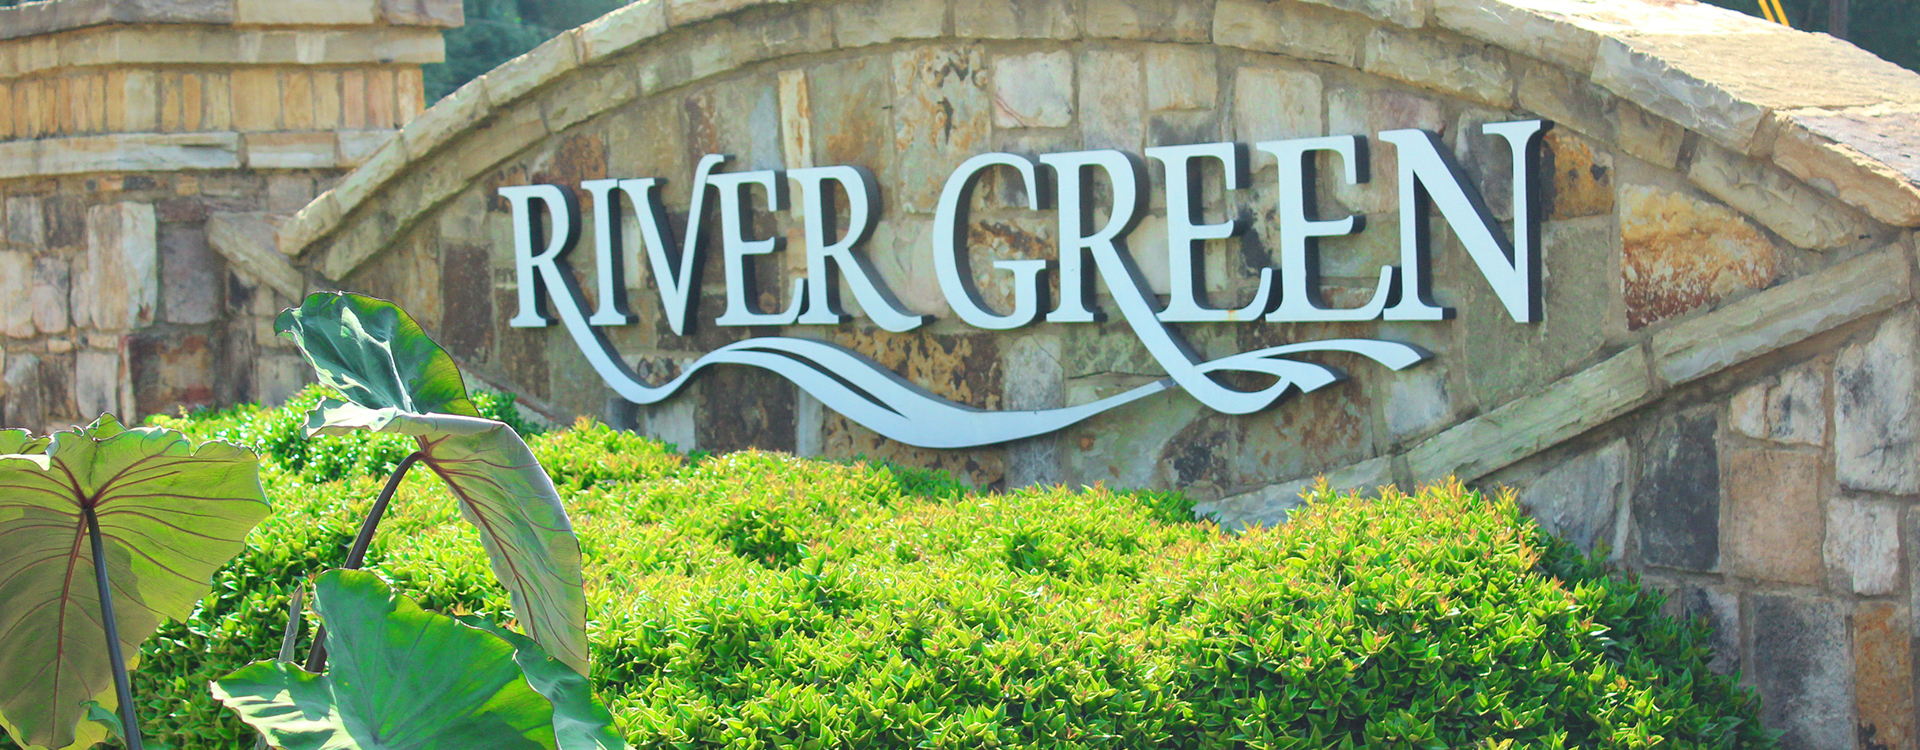 River Green homes for sale - The Jeff Buffo Team